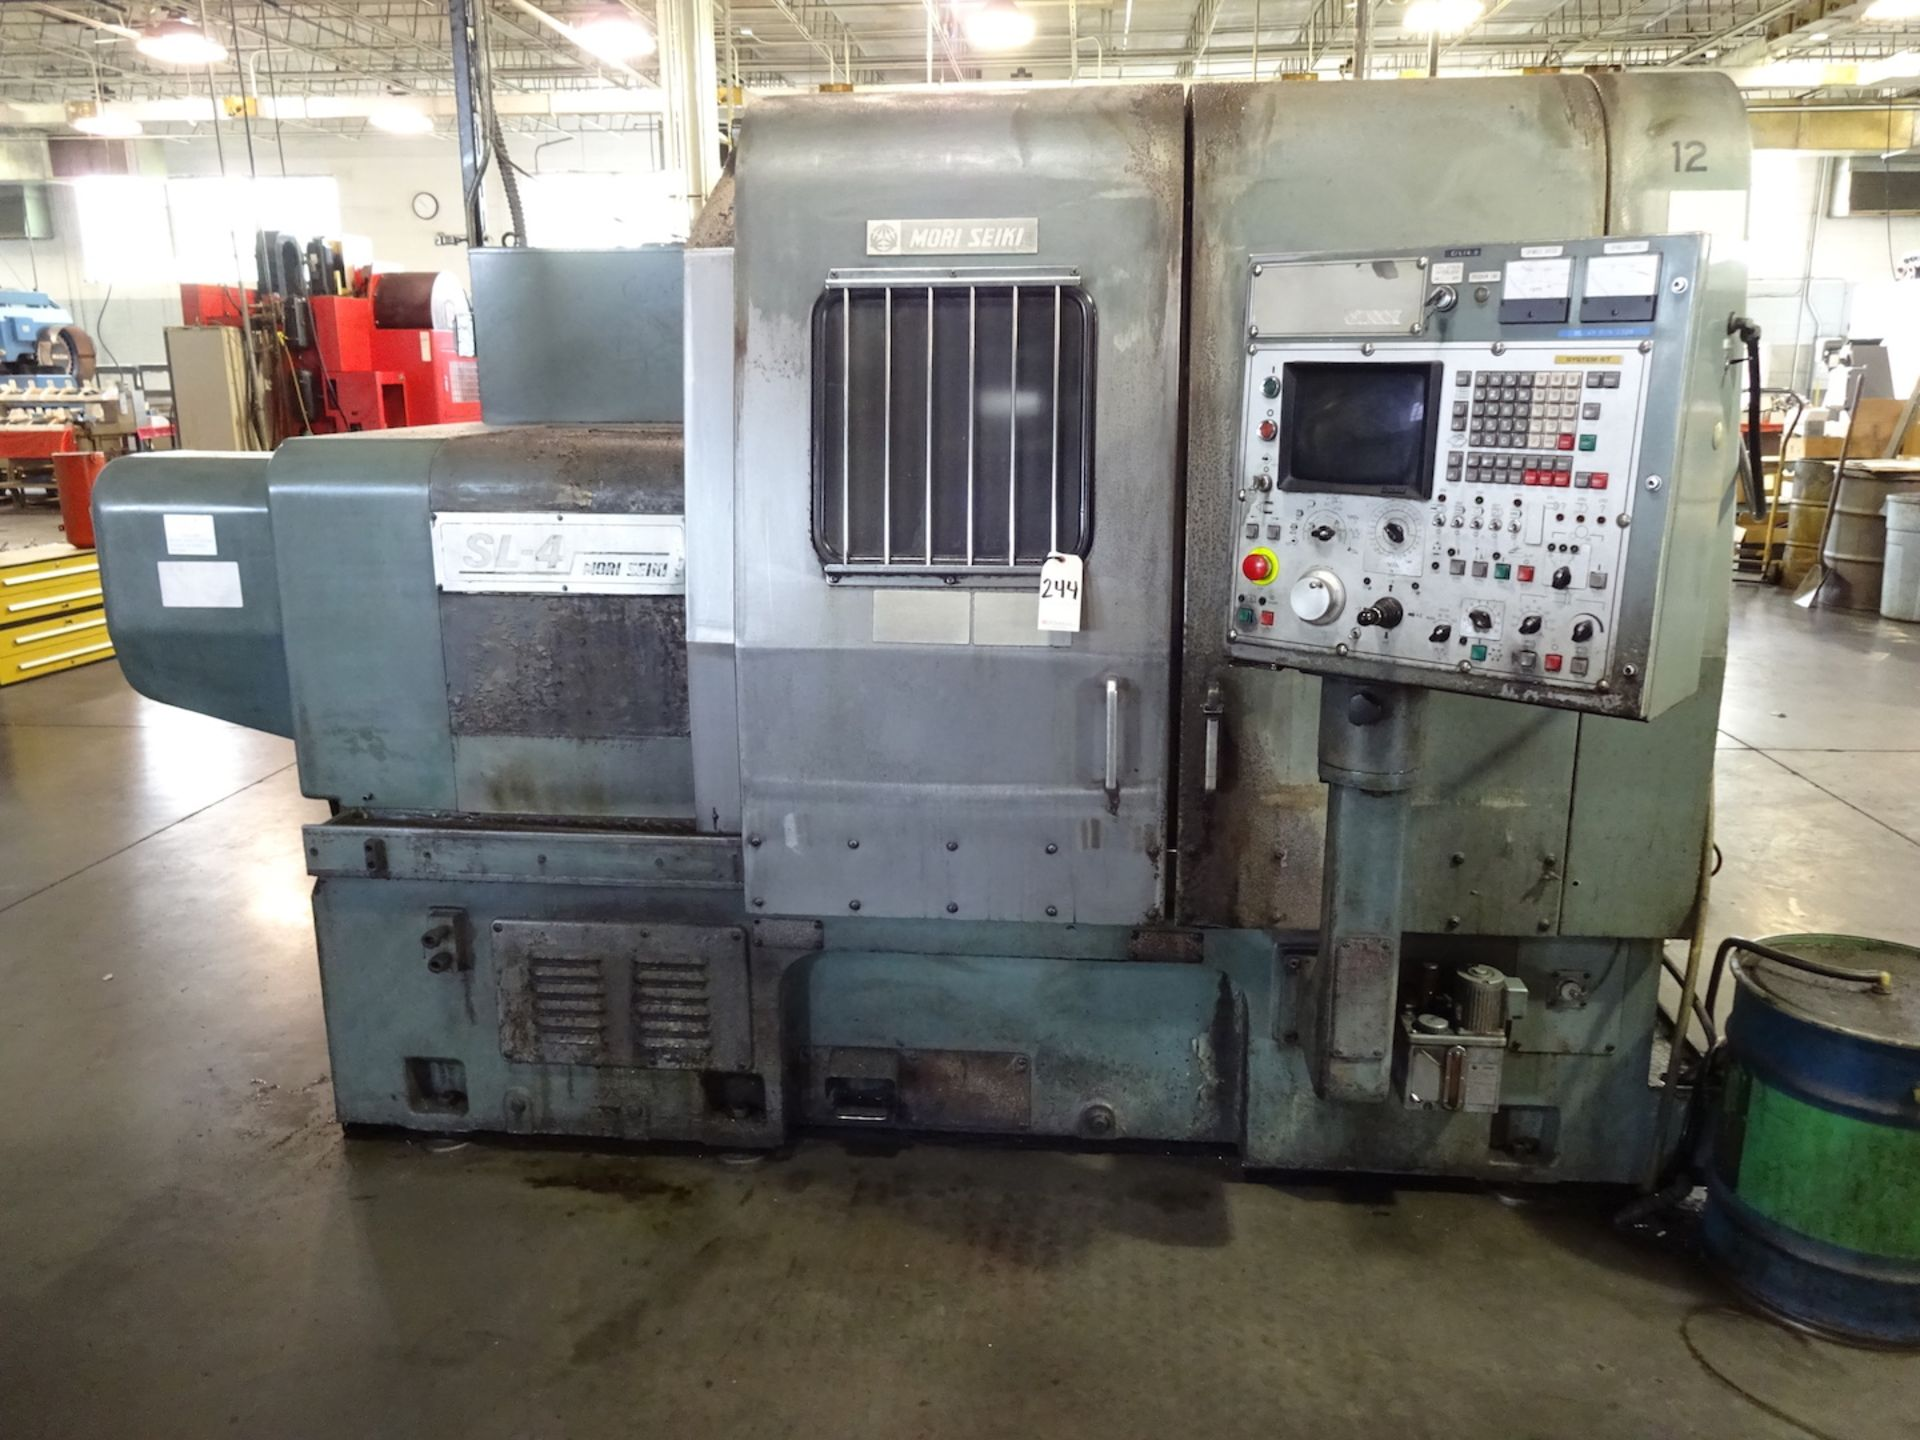 Lot 244 - Mori Seiki Model SL-4A CNC Turning Center, S/N 1328 (1984), Fanuc System 6-T CNC Control, 10 Station